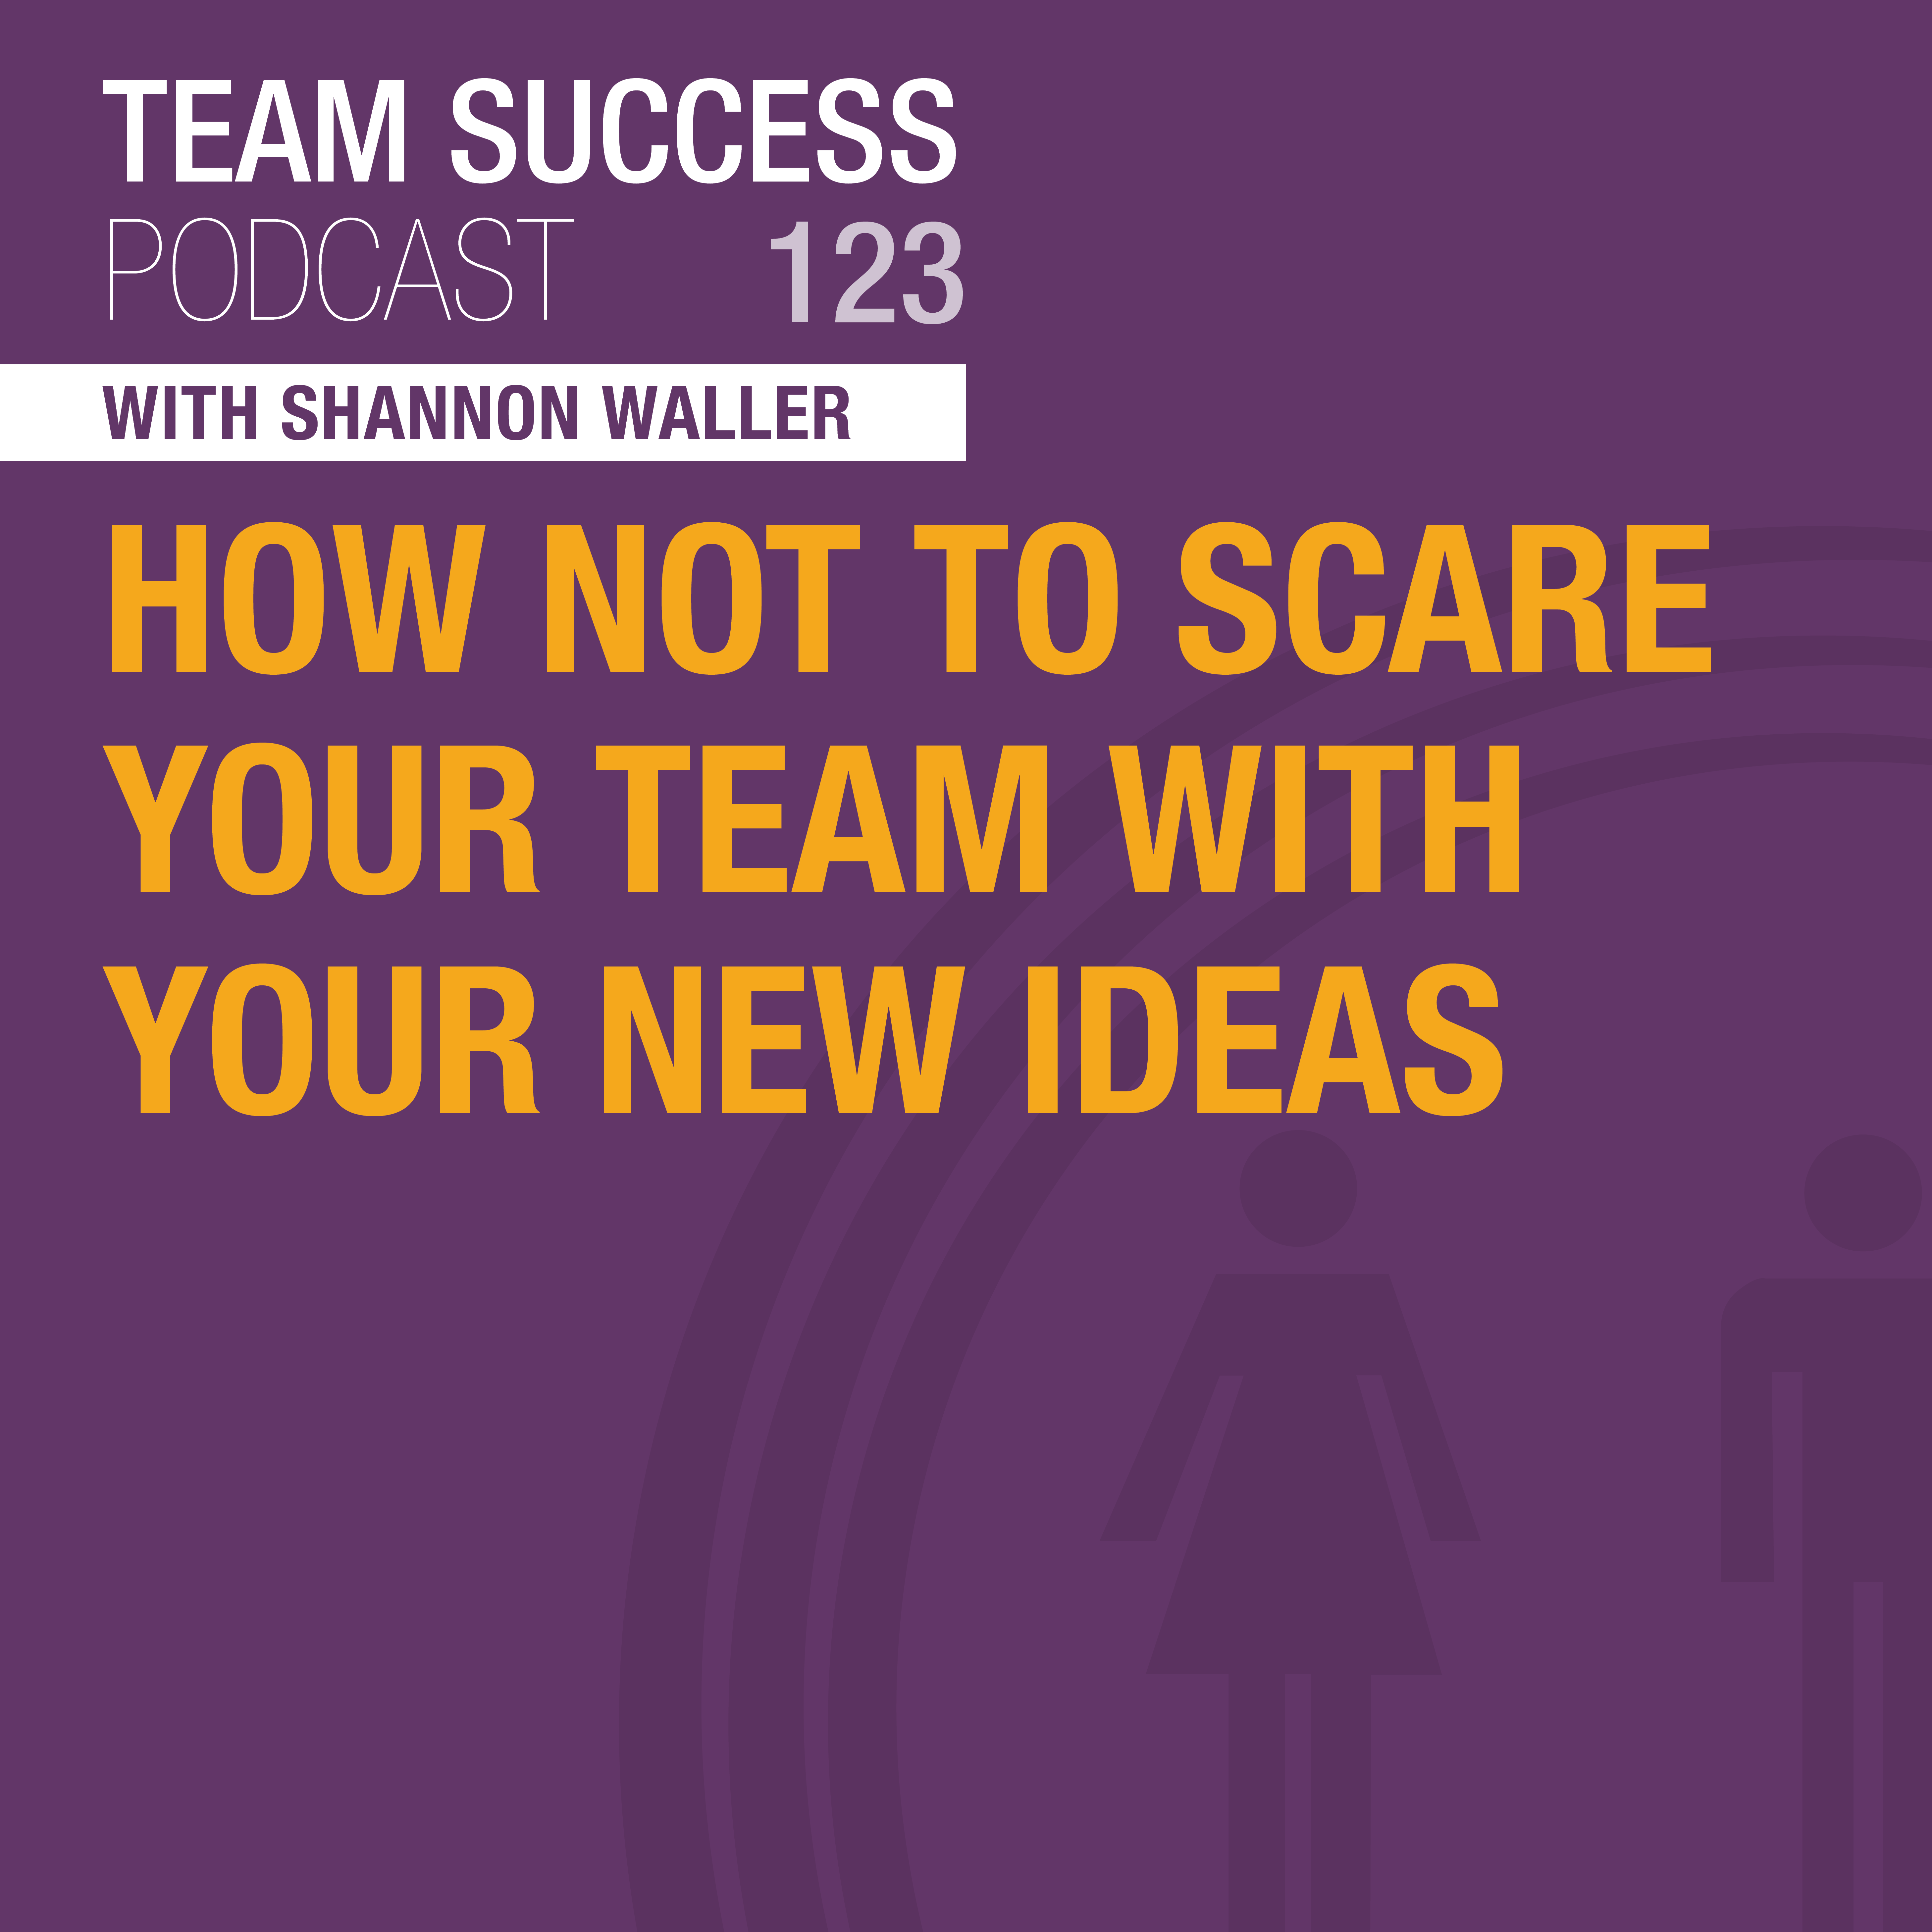 How Not To Scare Your Team With Your New Ideas